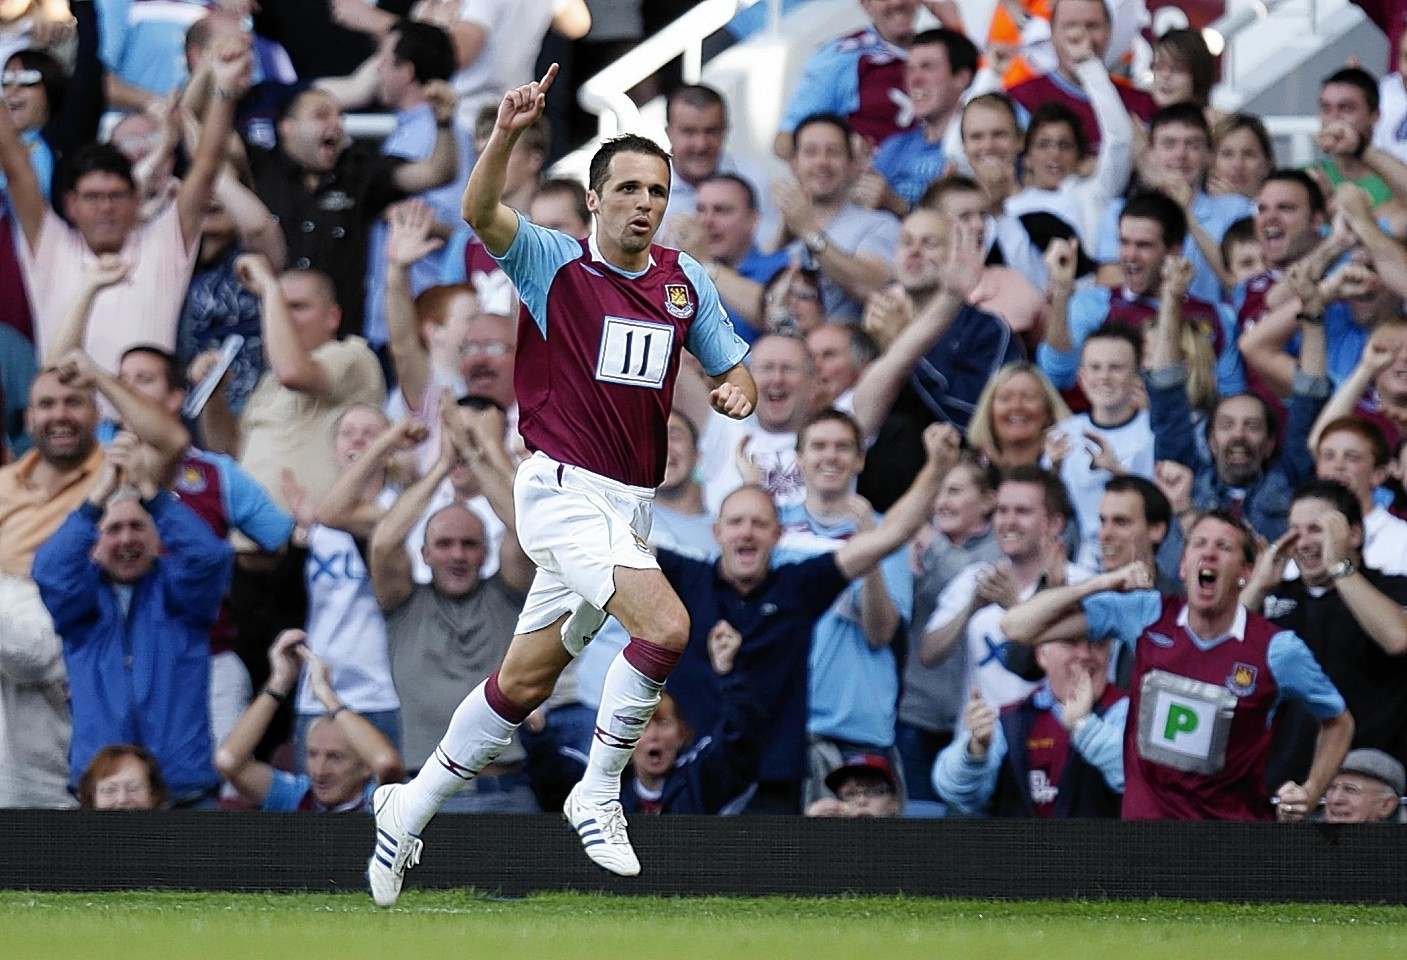 Former West Ham winger Matthew Etherington, who recently retired, is one of a number of players who have struggled with gambling addictions